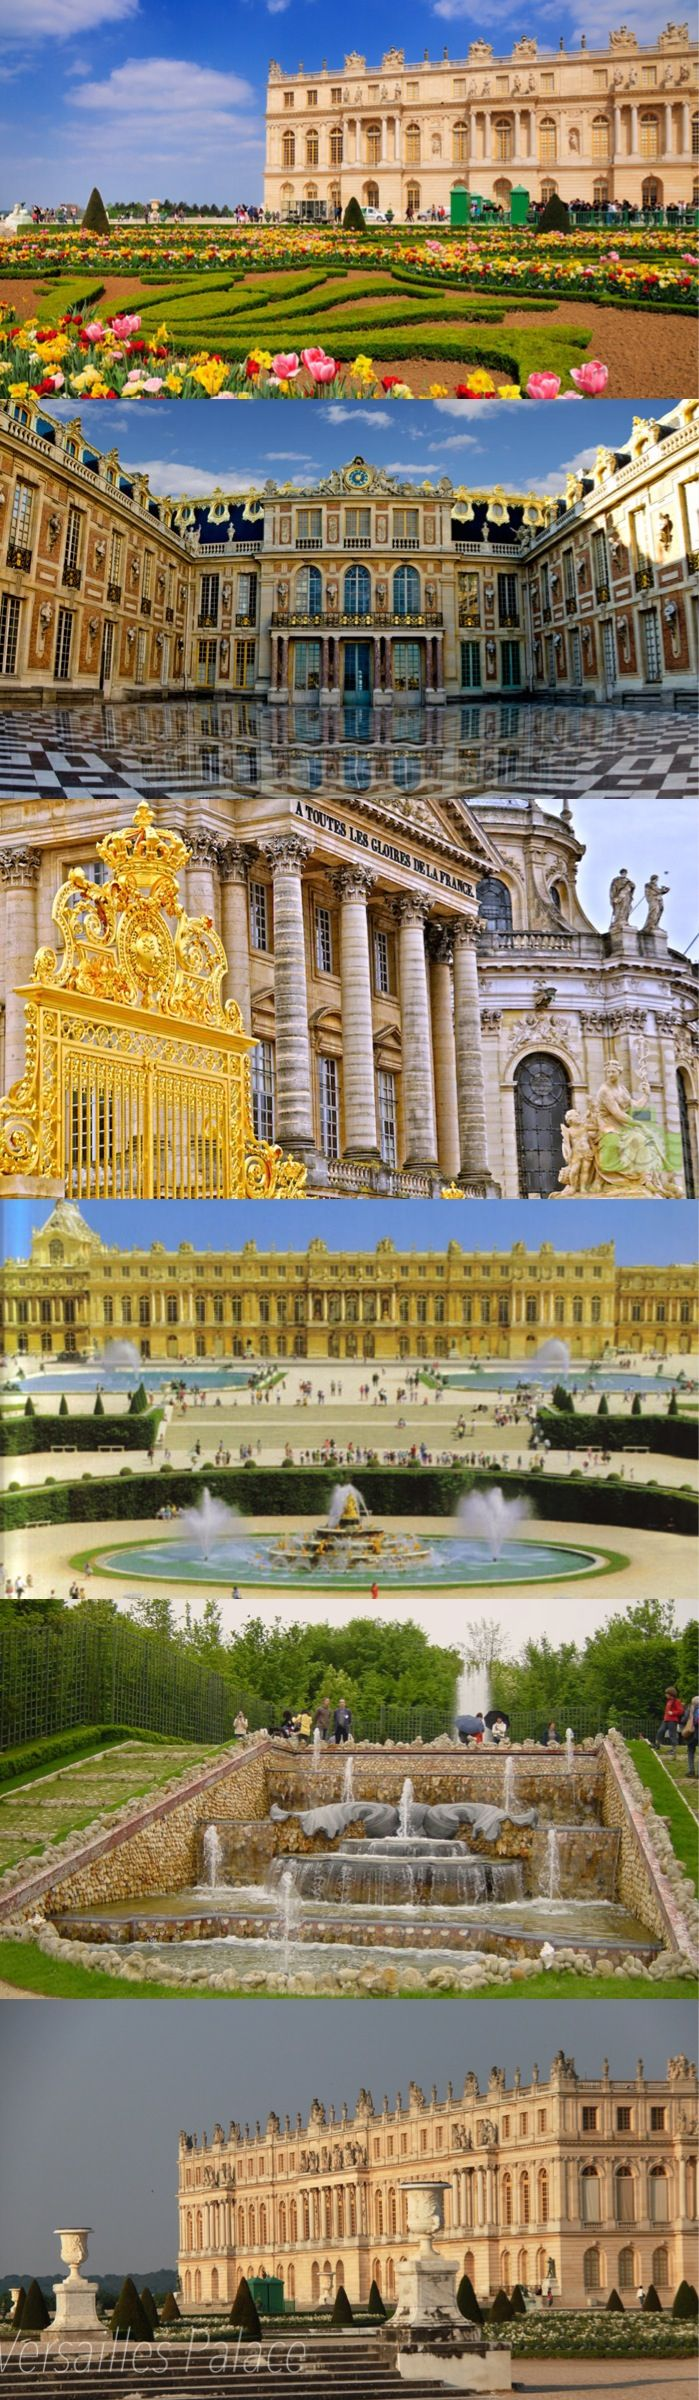 Versailles Palace. The most beautiful palace I've been! But, the best time I had was walking thru it with Nicole!